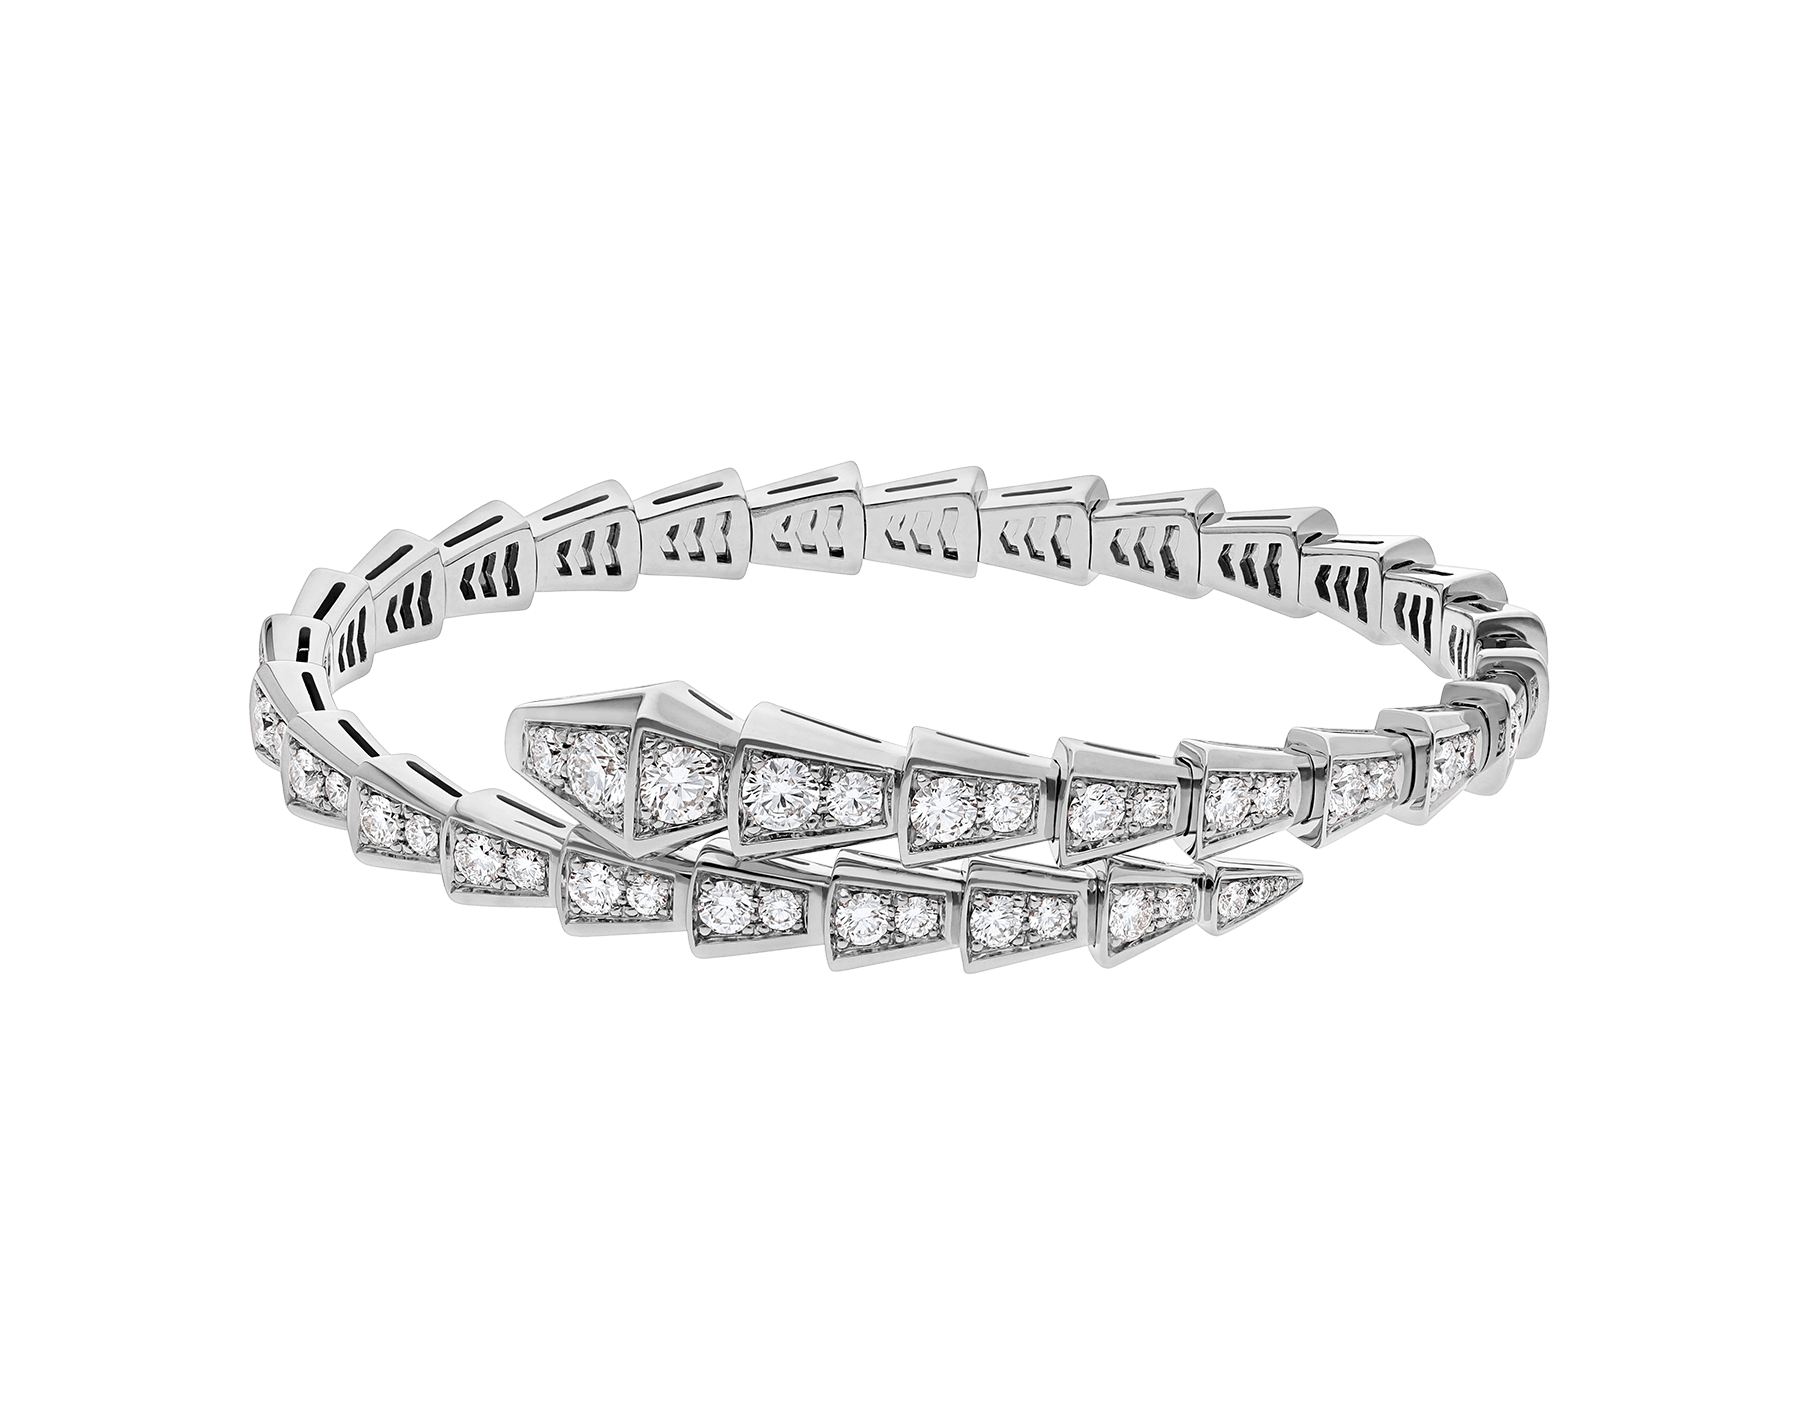 Serpenti one-coil slim bracelet in 18 kt white gold, set with full pavé diamonds. BR857492 image 2